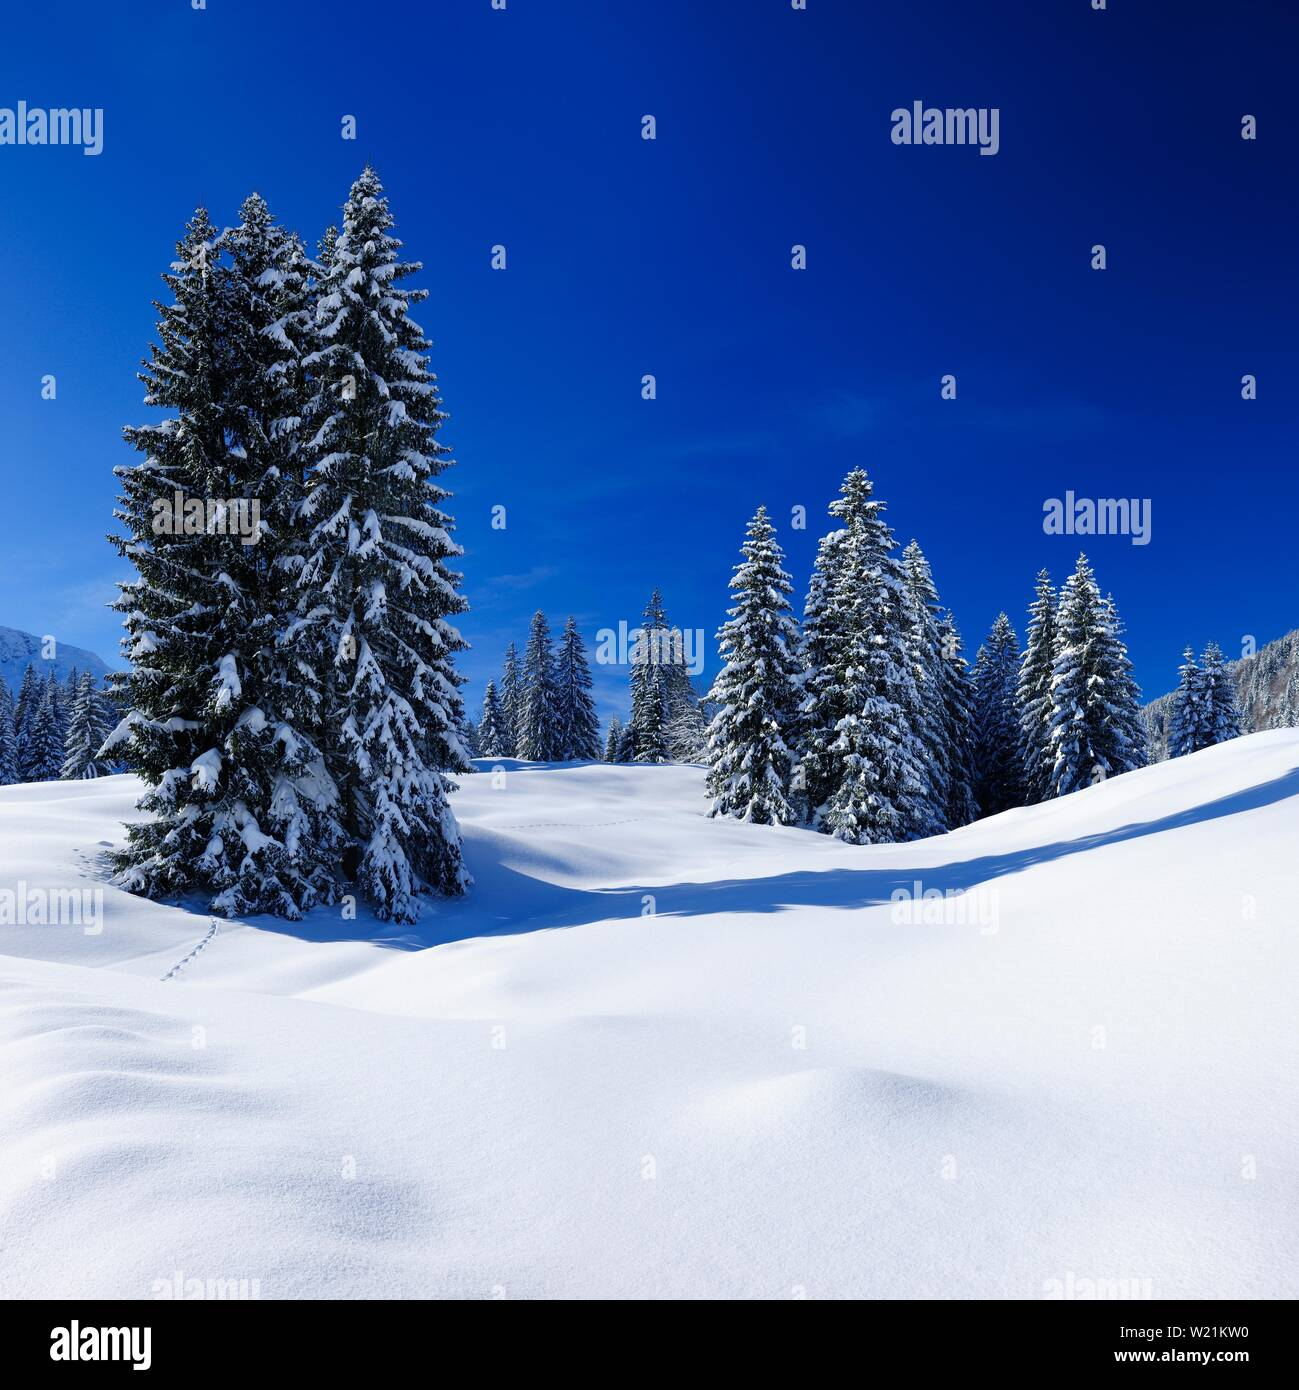 Deep snow-covered untouched winter landscape at the Oberjochpass, fir trees covered with snow, bright sunshine, blue sky, Oberjoch, Allgau, Bavaria - Stock Image